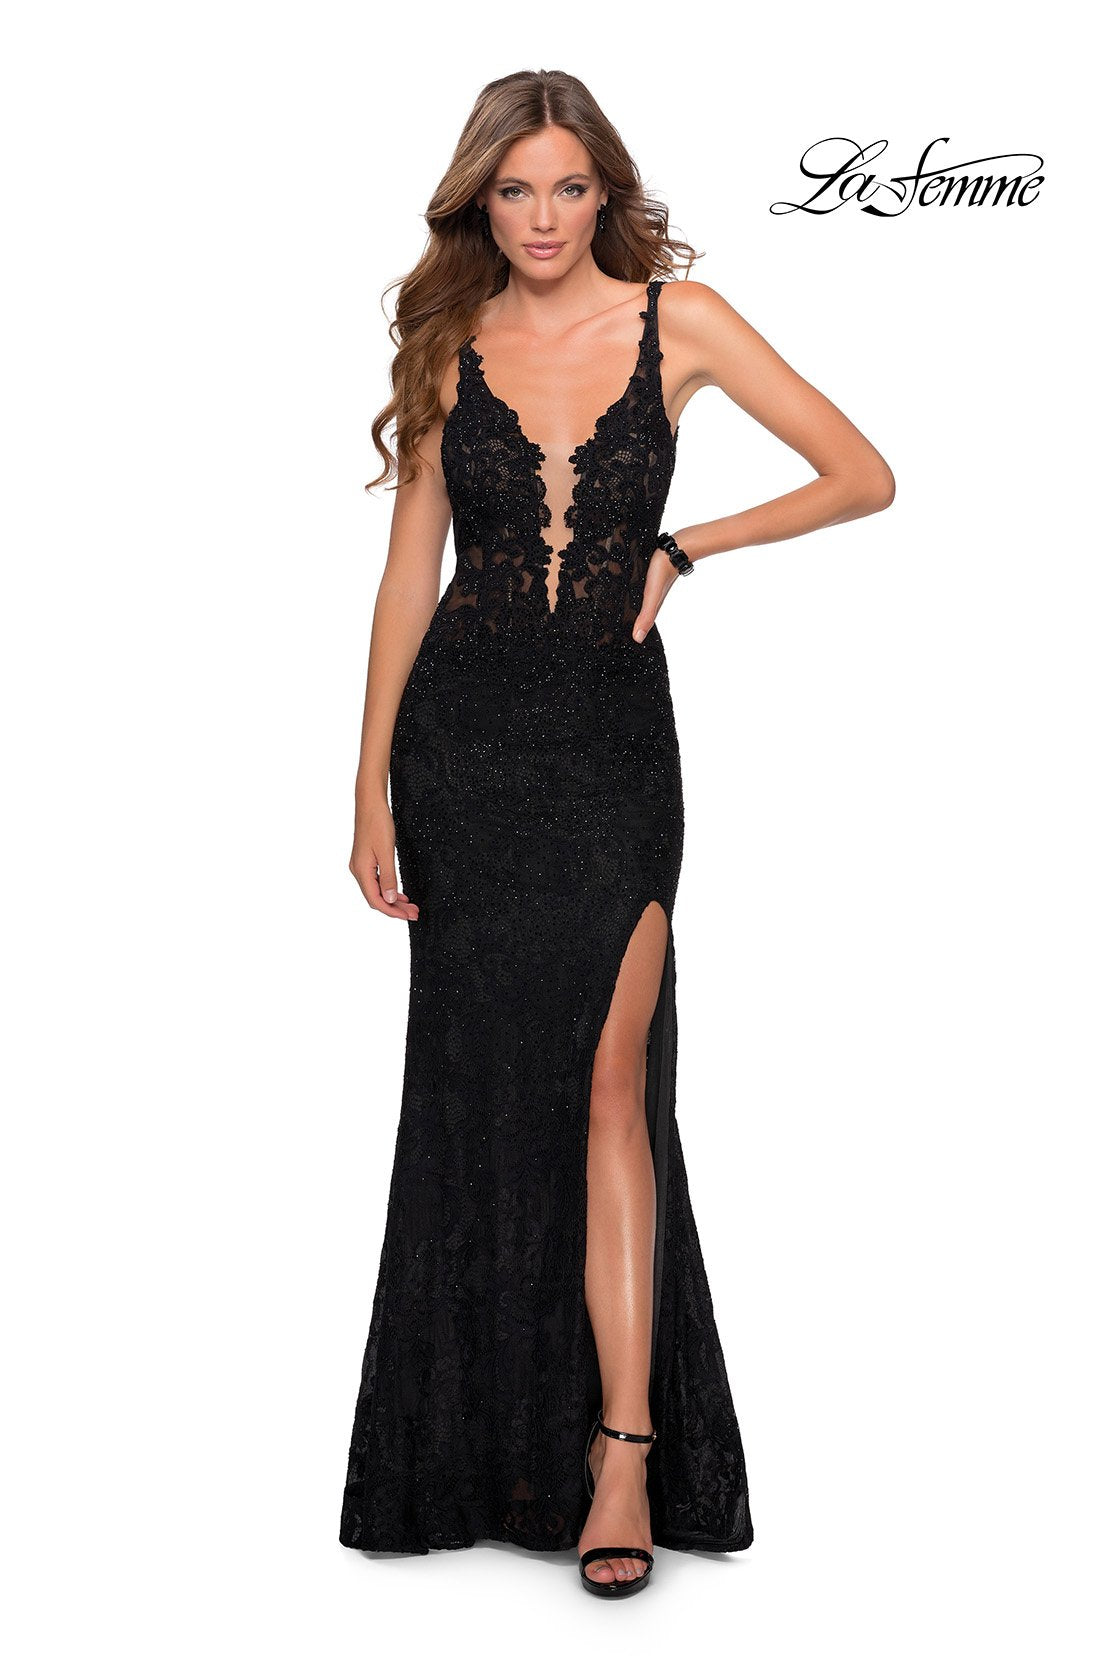 La Femme 28648 prom dress images.  La Femme 28648 is available in these colors: Black, Dark Berry.